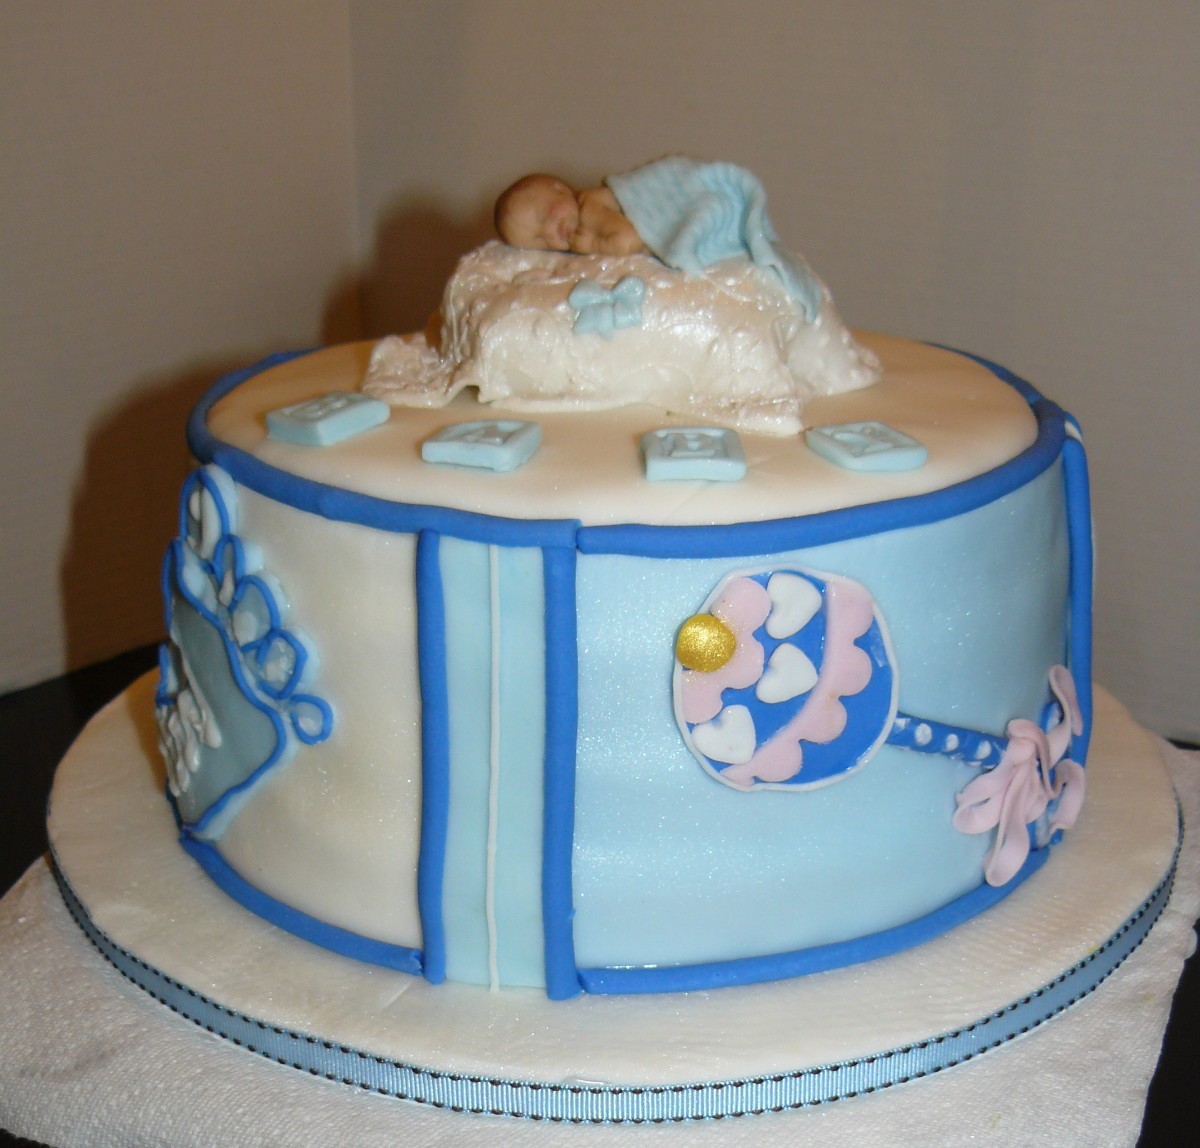 Cake Ideas For New Baby : 10 Gorgeous Cake Designs For Baby Shower CAKE DESIGN AND ...